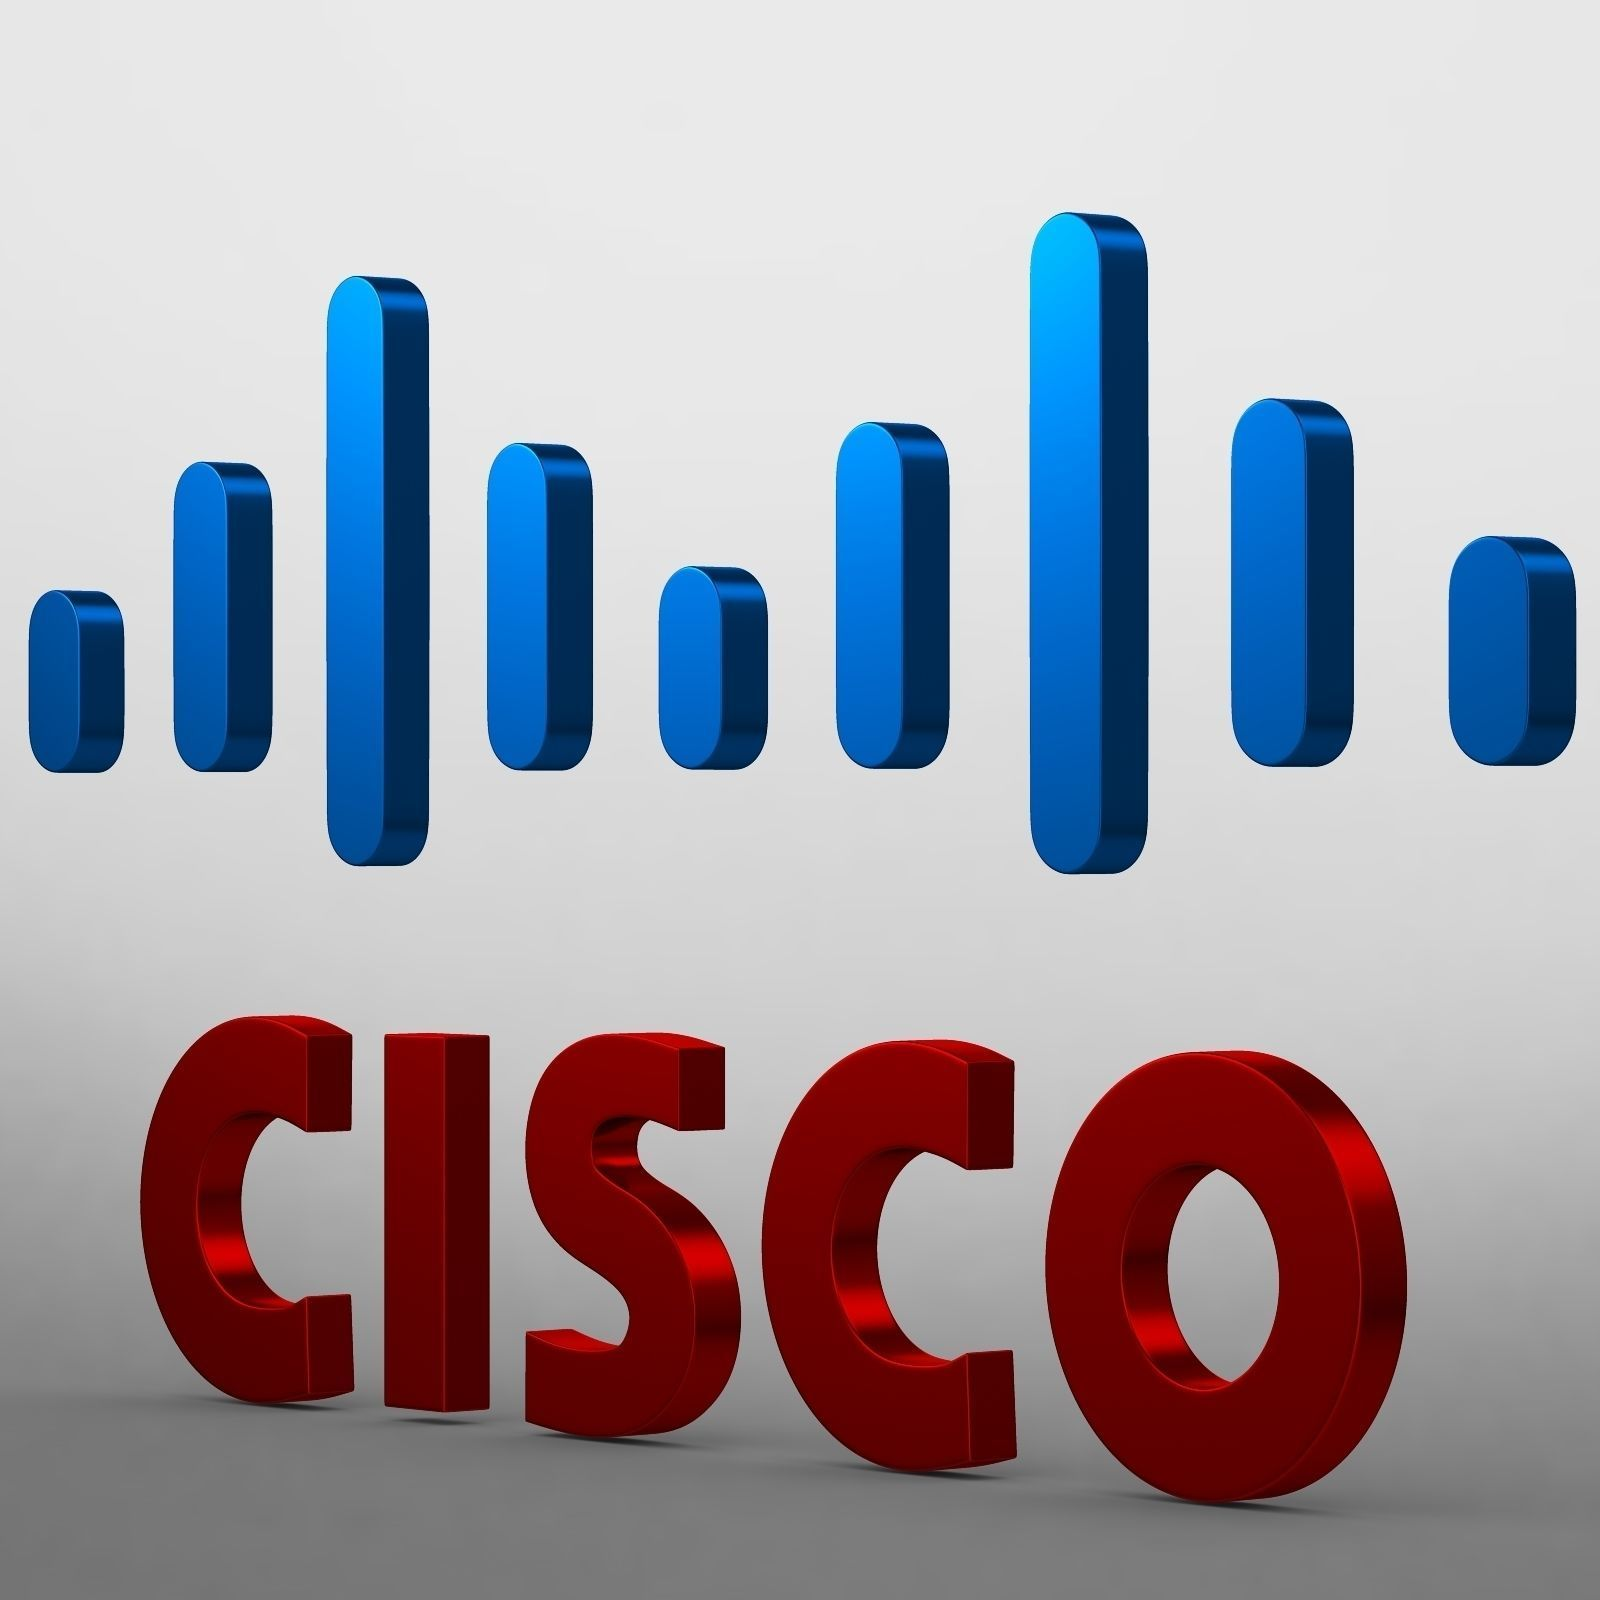 cisco logo 3d model obj 3ds fbx c4d lwo lw lws ma mb 1